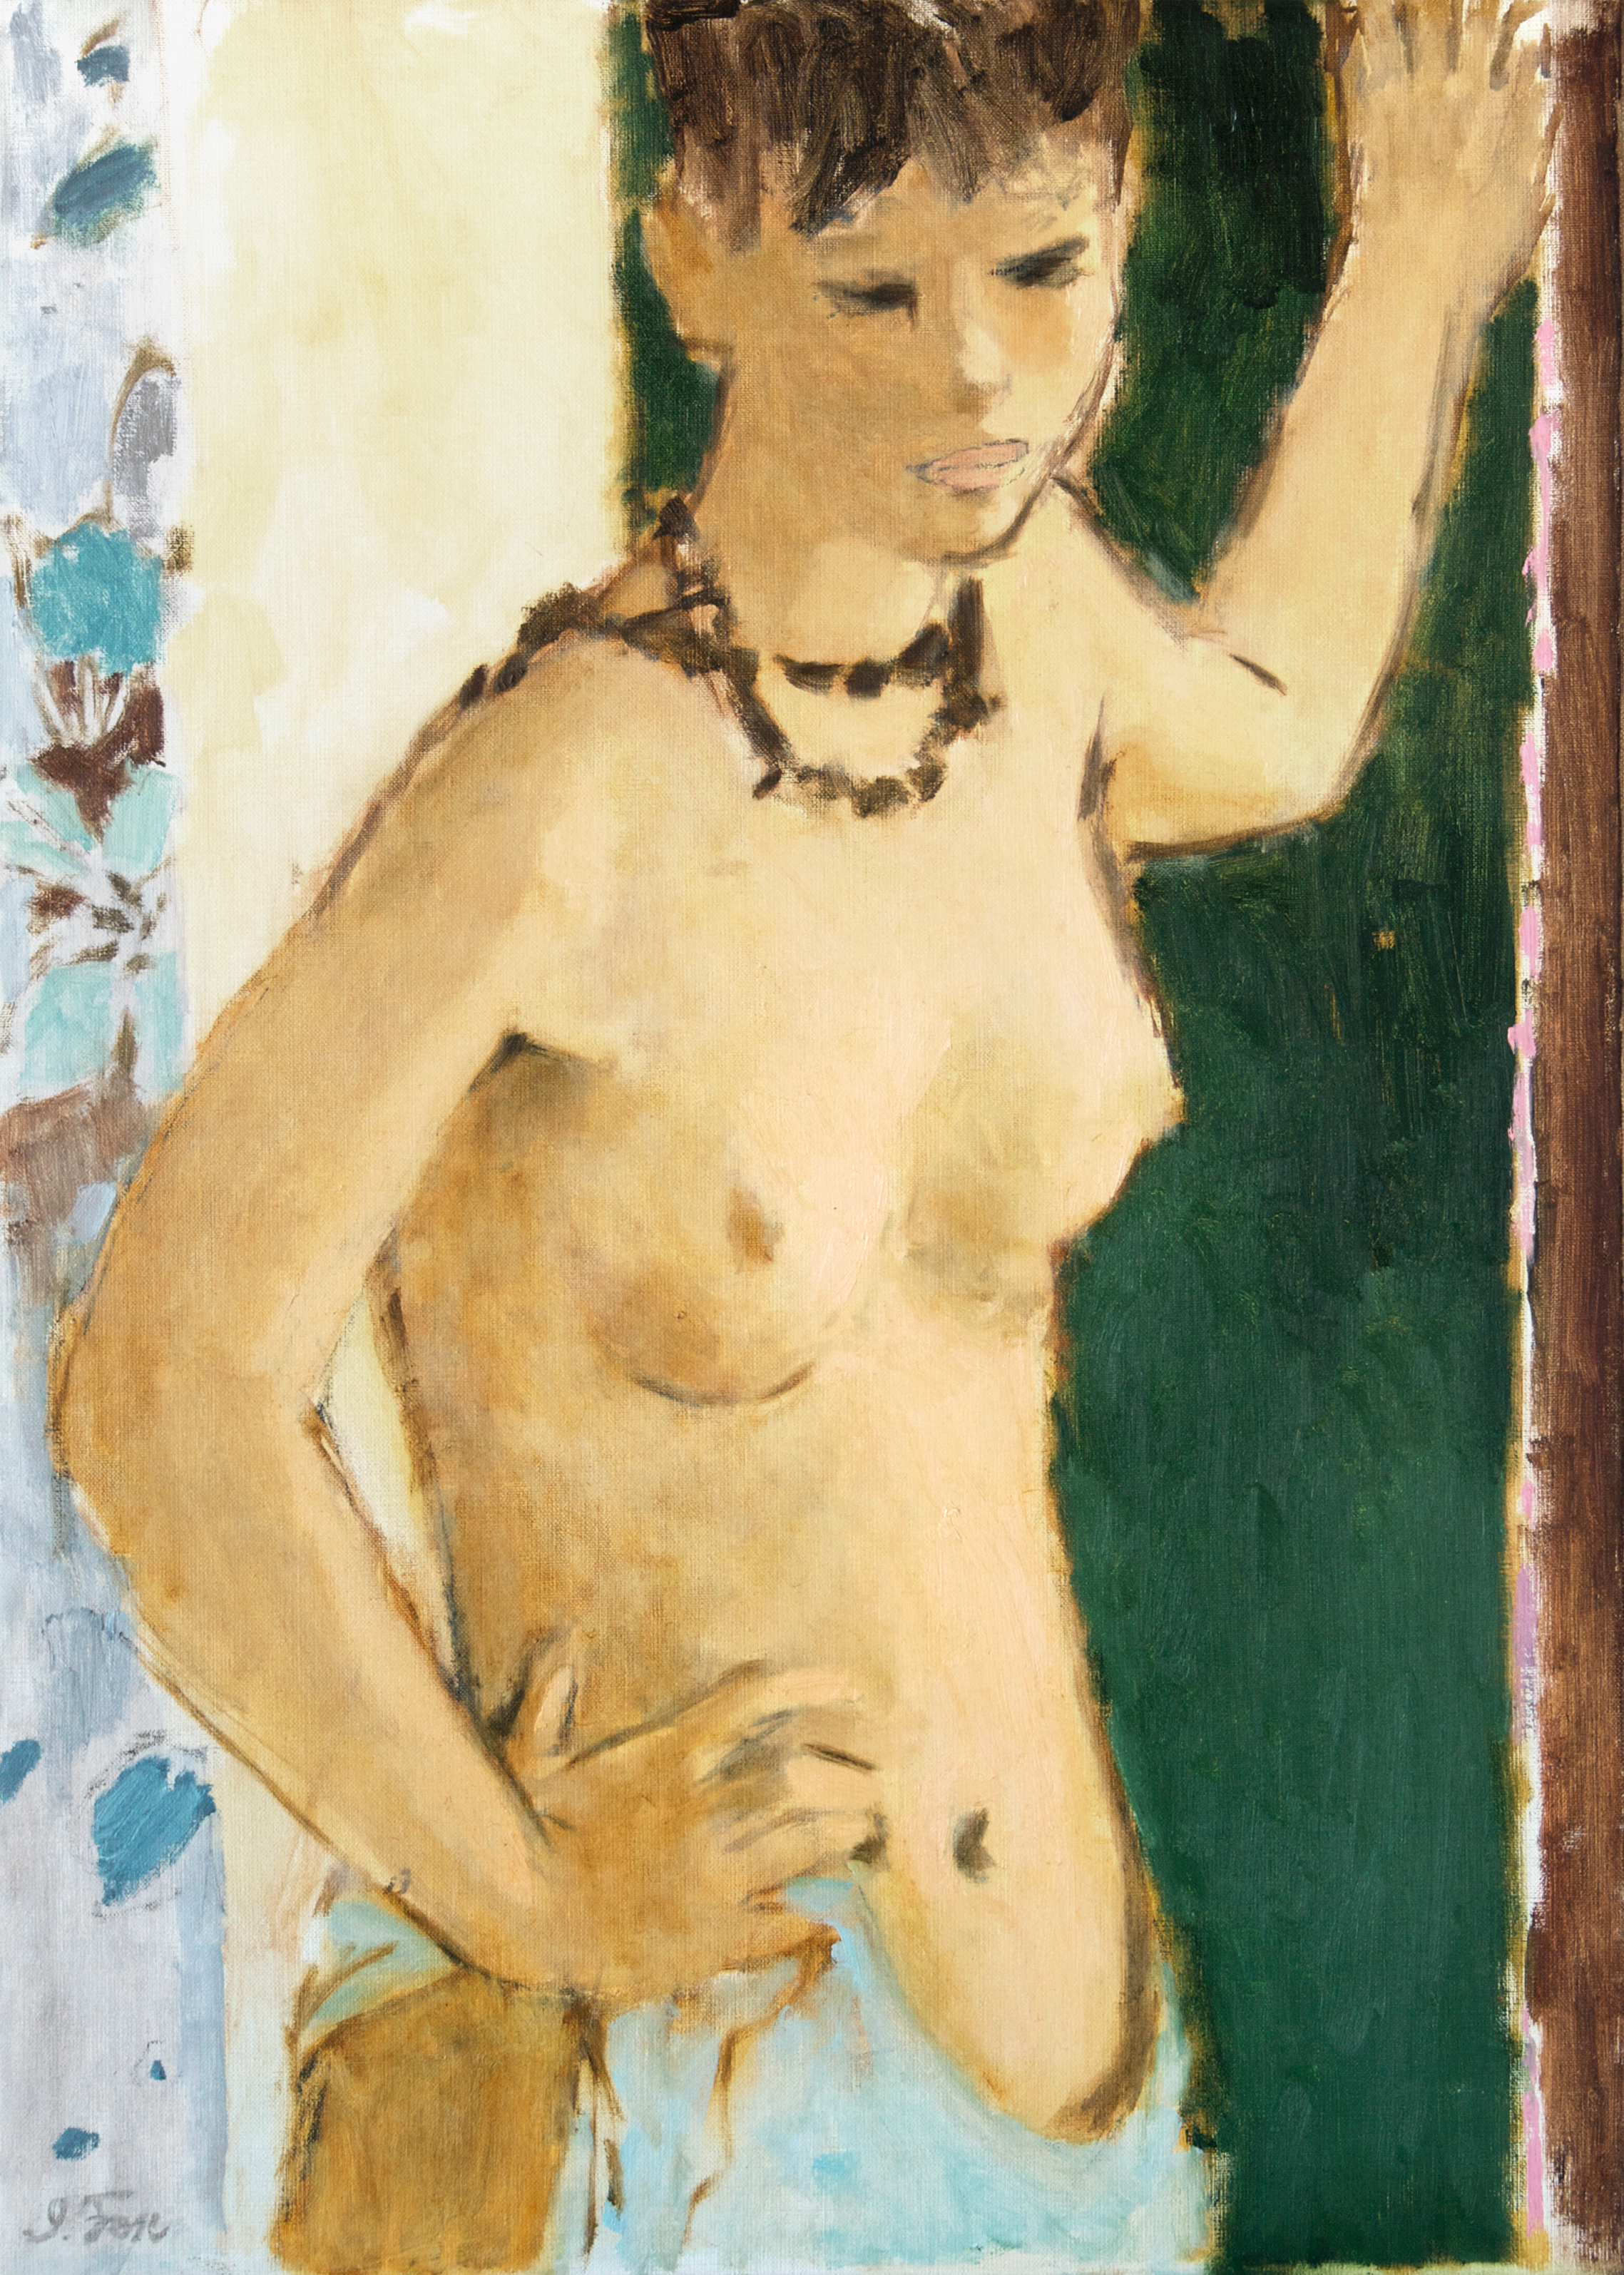 1958_Nude_with_Necklace_oil_on_linen_28x20in_PF365.jpg